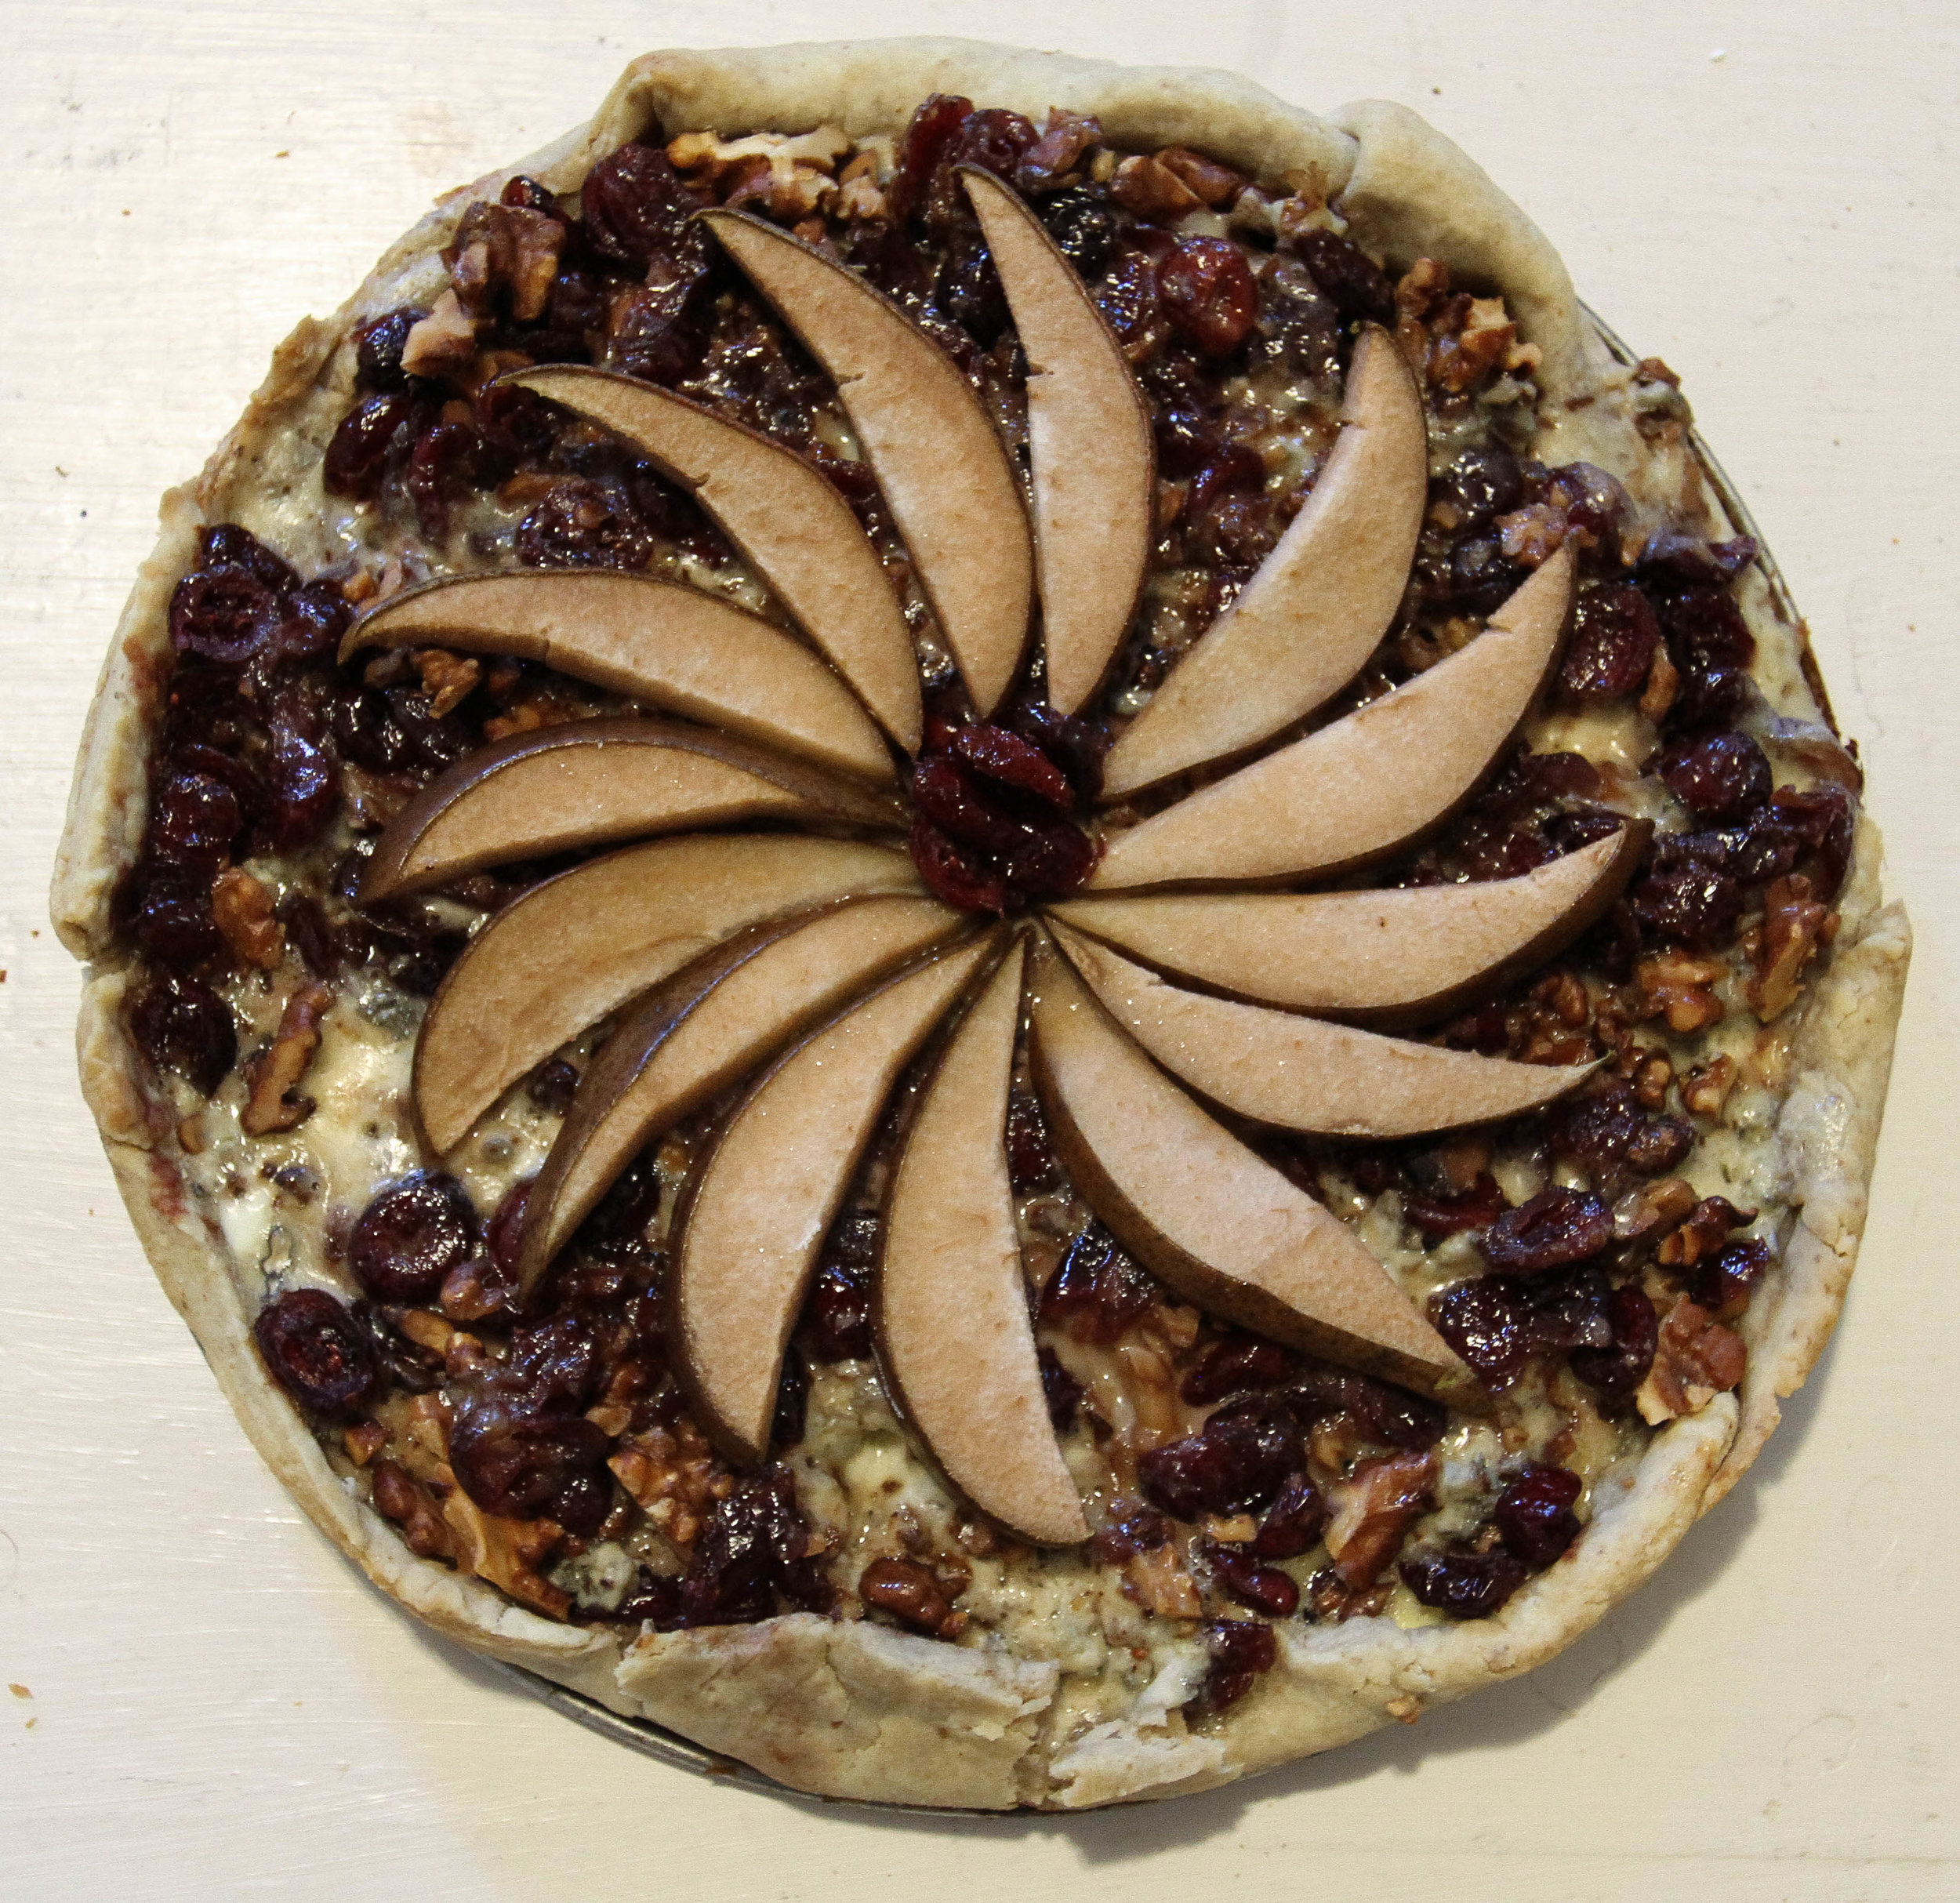 The walnut tart shell wouldn't have been bad if it had held together, though. I might make it again.